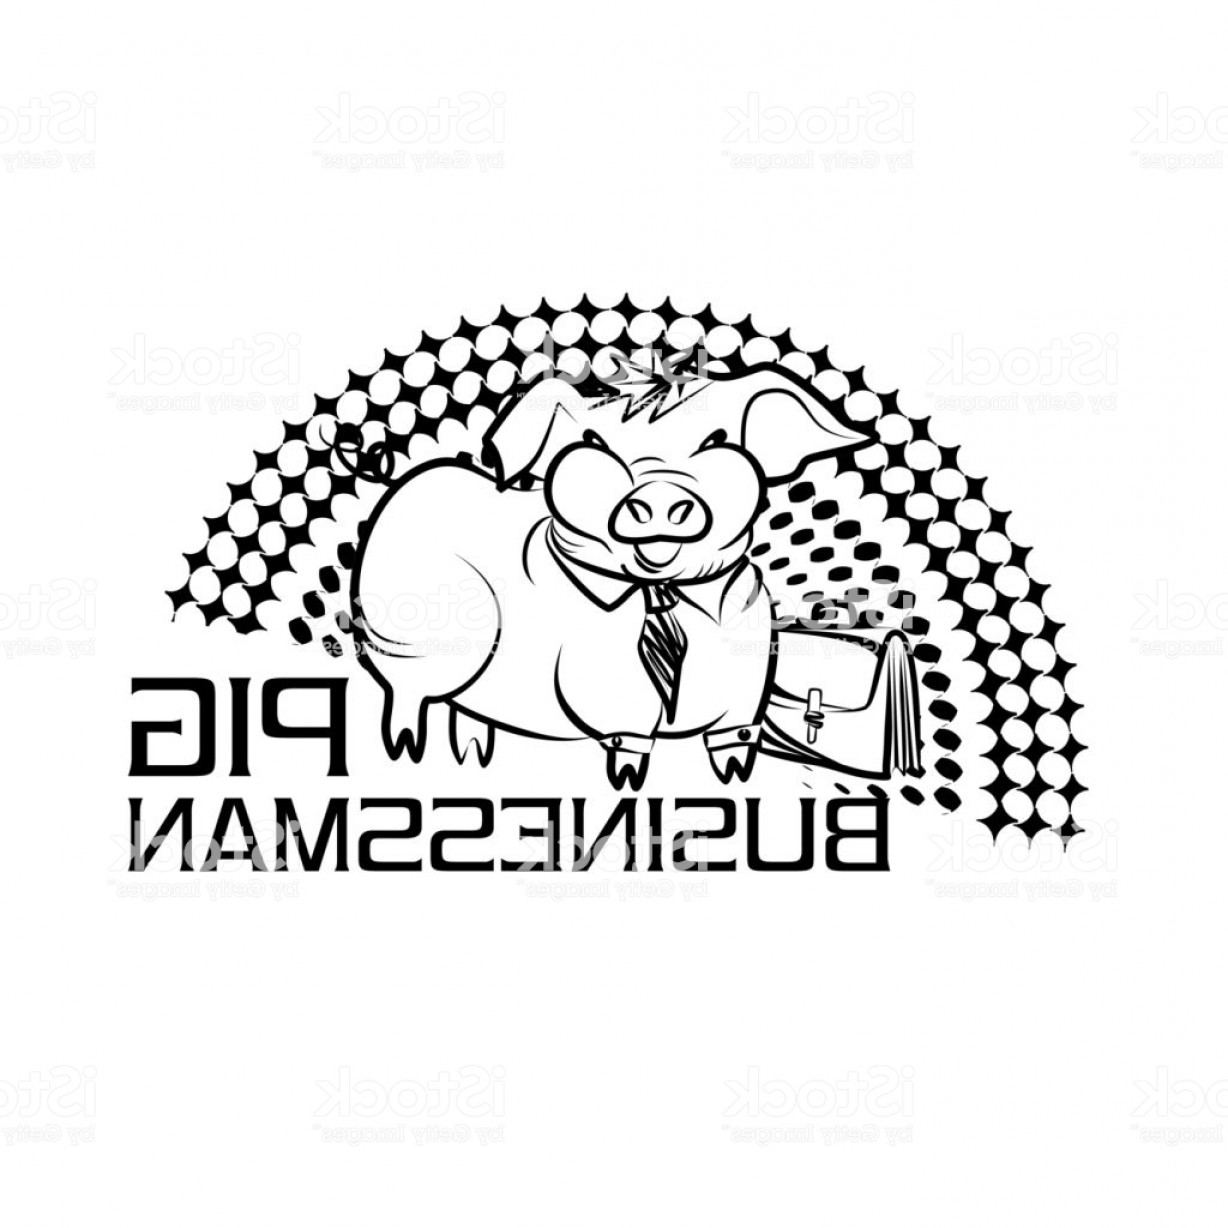 Funny Black And White Vector: Black And White Vector Logo With A Funny Pig Businessman Gm